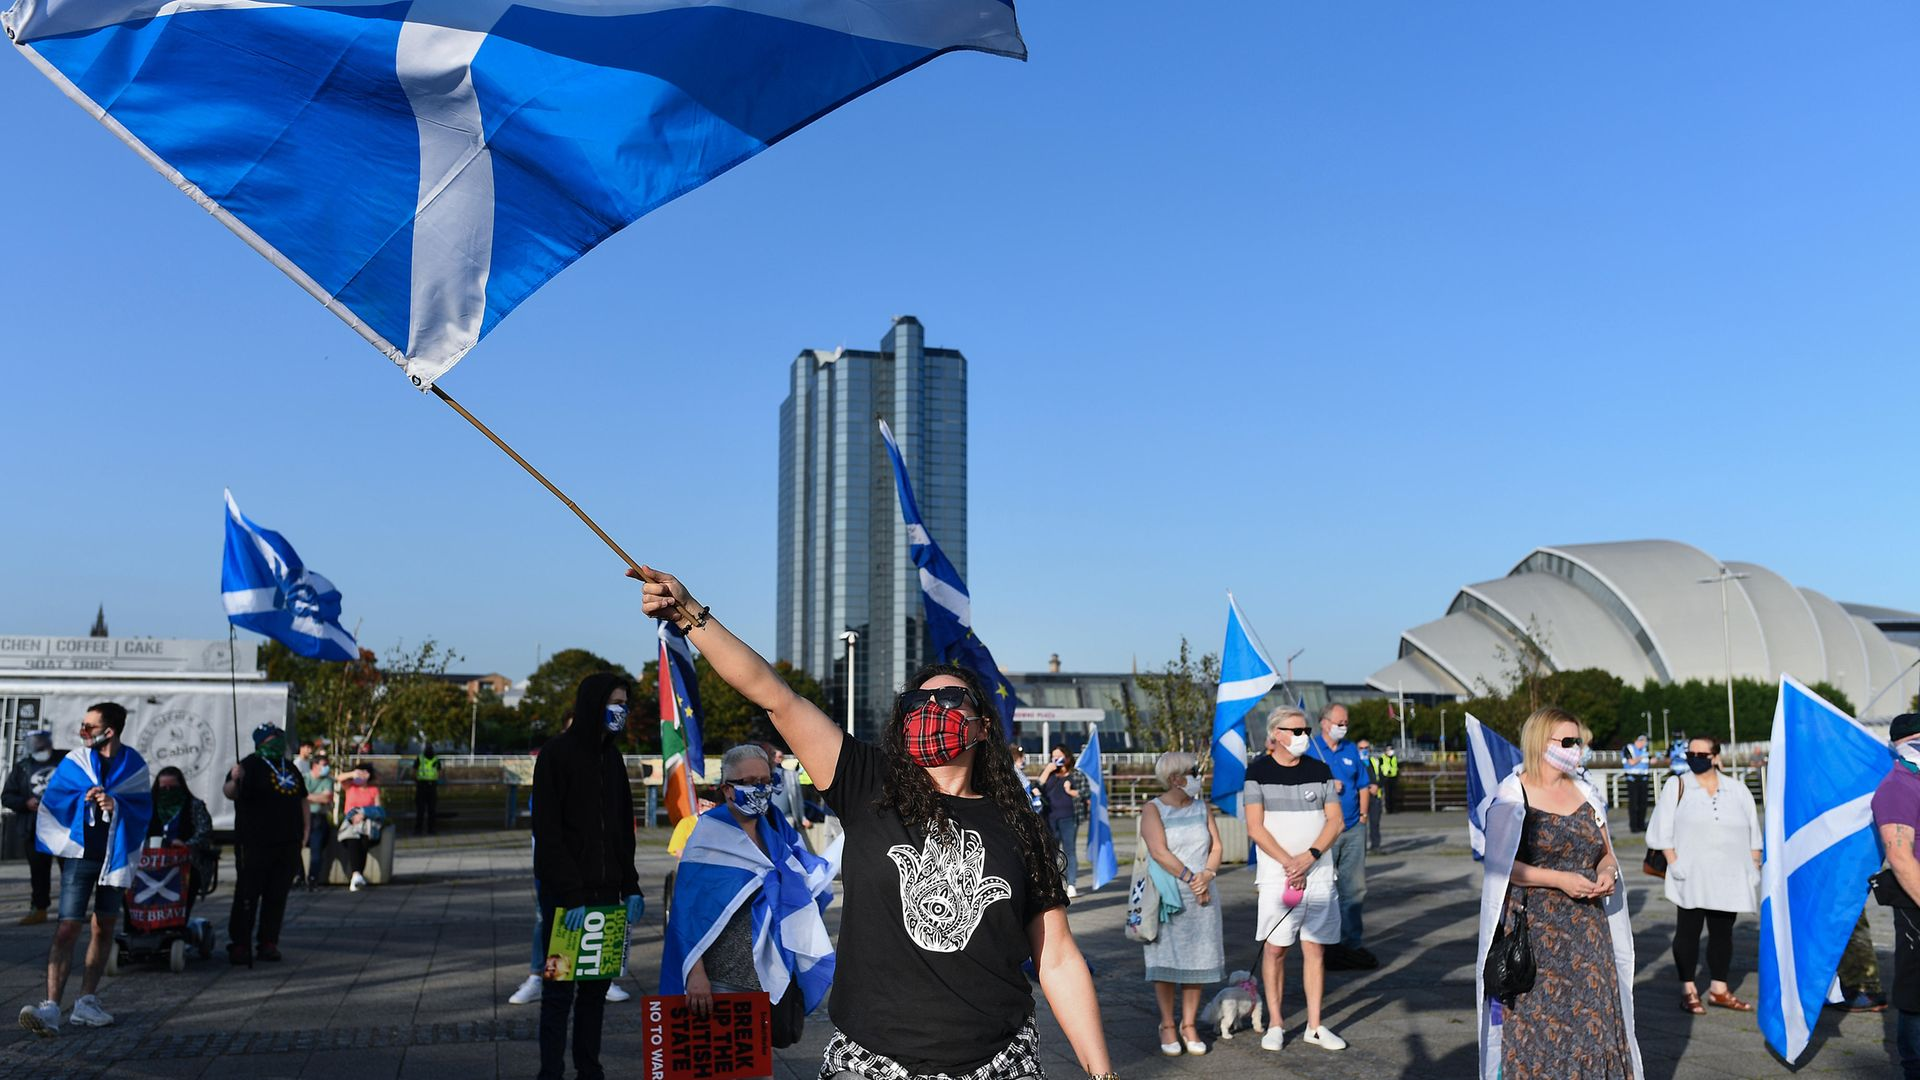 Campaigners for an independent Scotland hold a socially-distanced rally in September 2020 - Credit: Getty Images